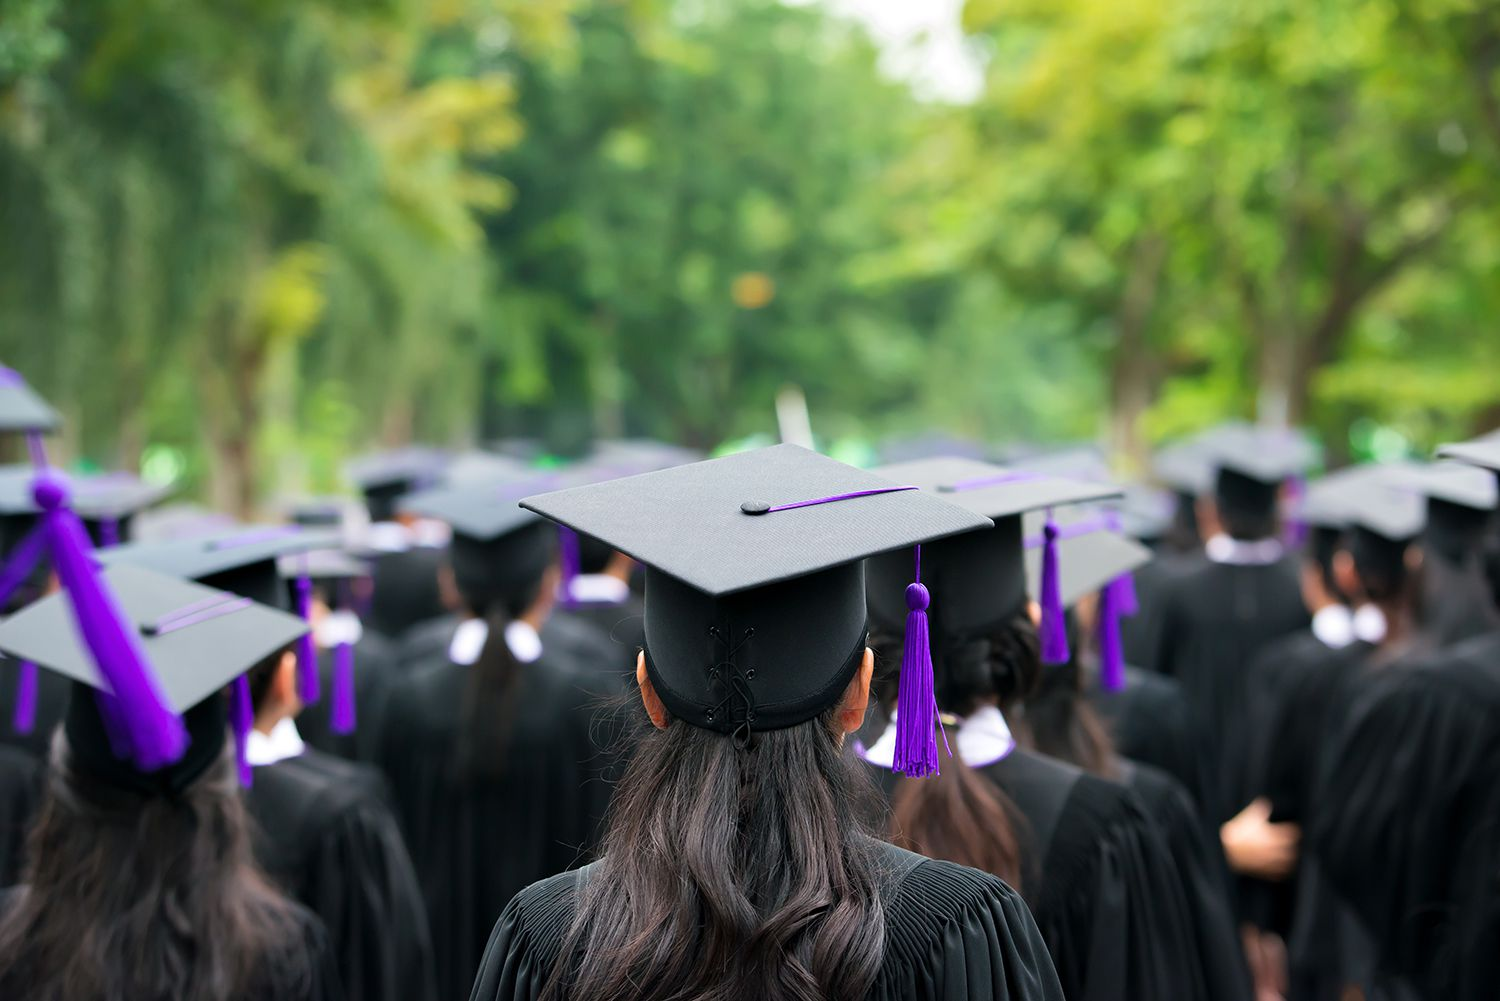 Back of graduates during commencement at university